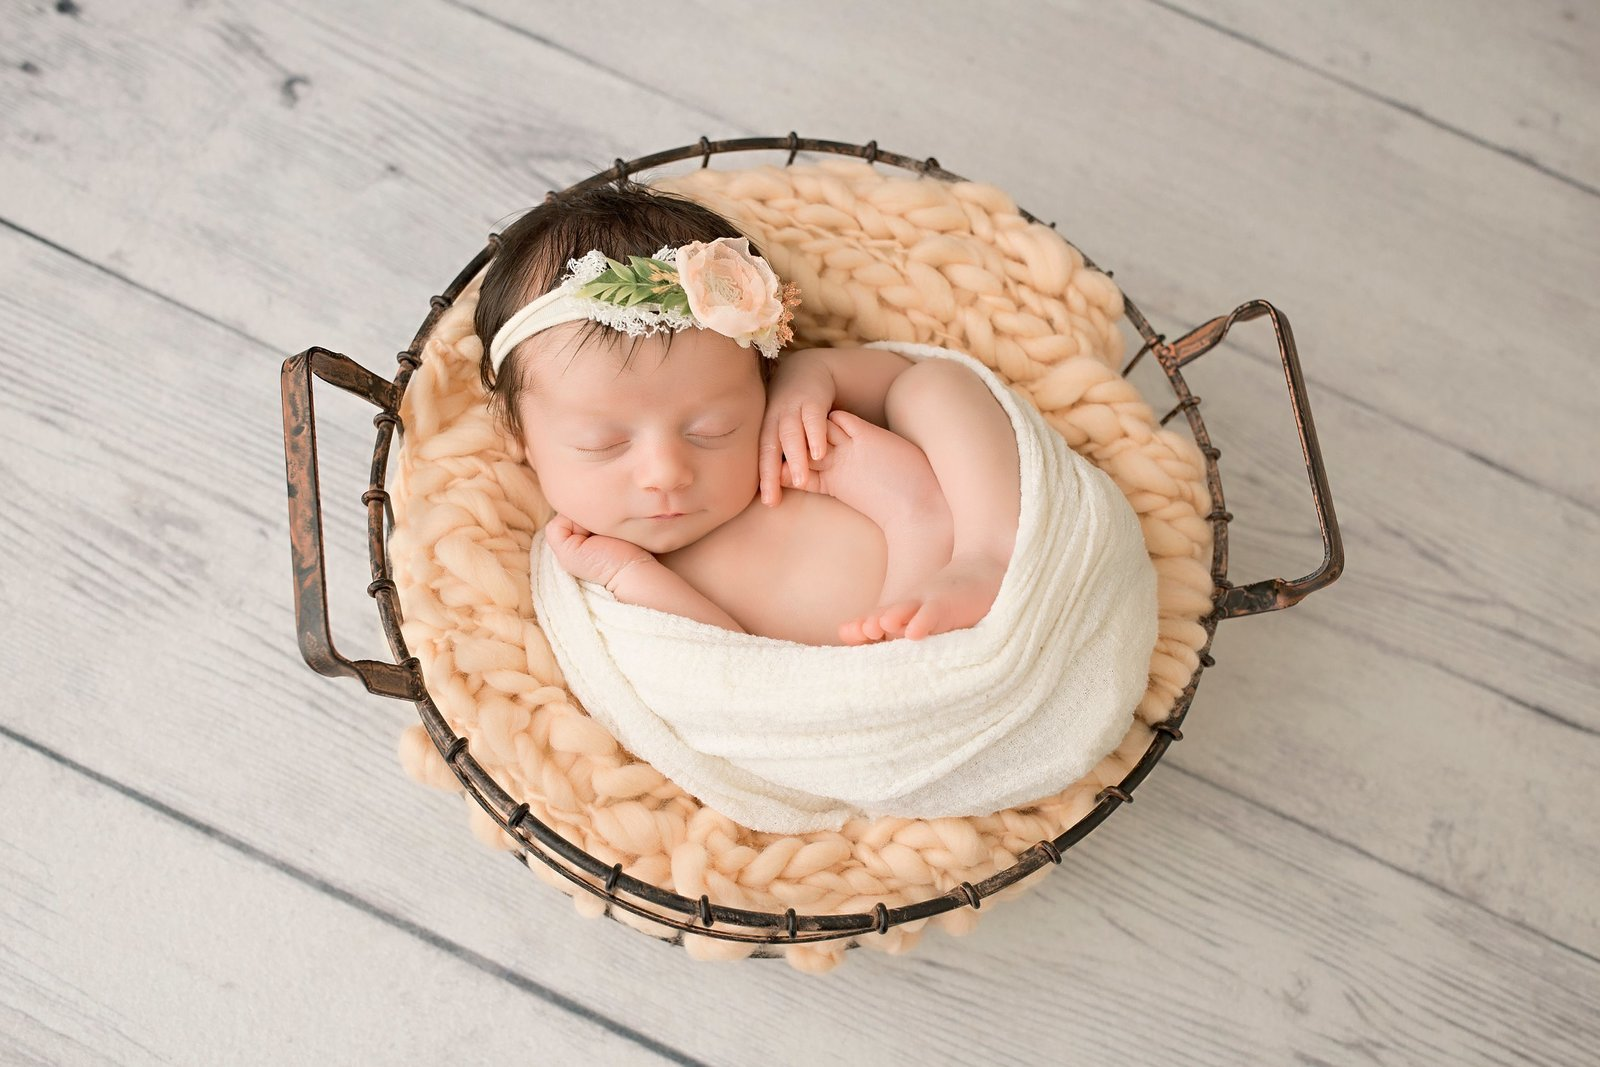 Newborn baby girl in wire basket